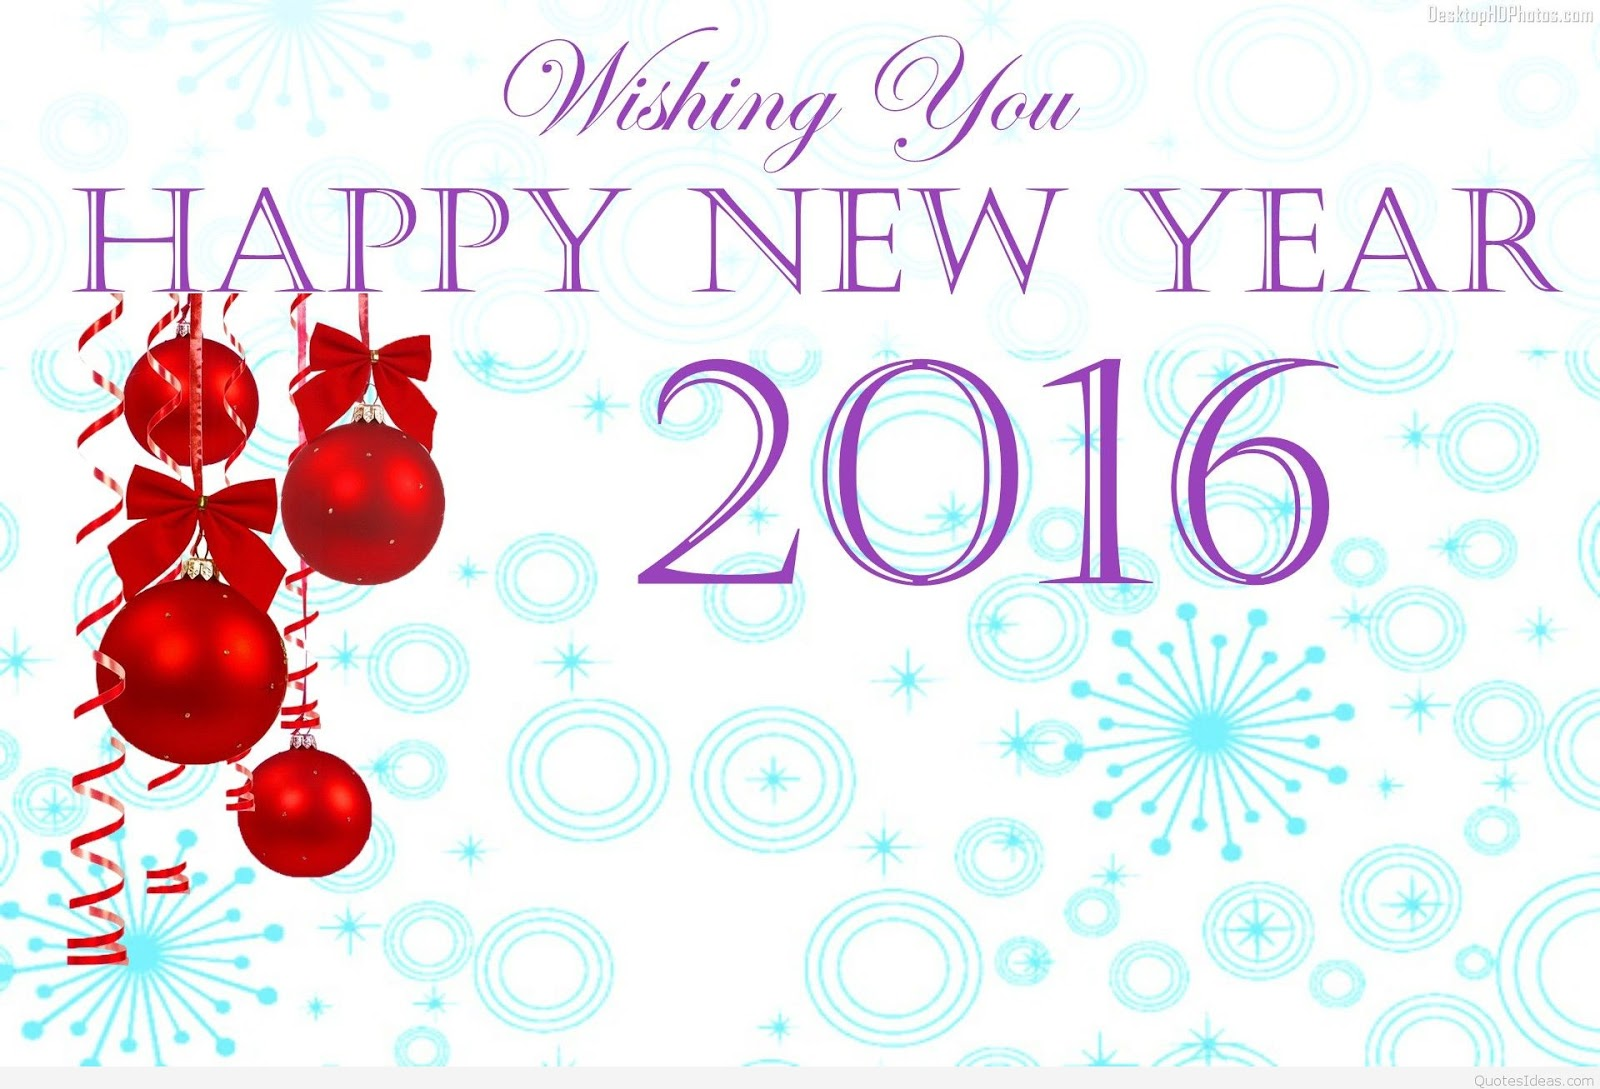 New year romantic love sms for girlfriend happy new year 2016 happy new year 2016 romantic sms m4hsunfo